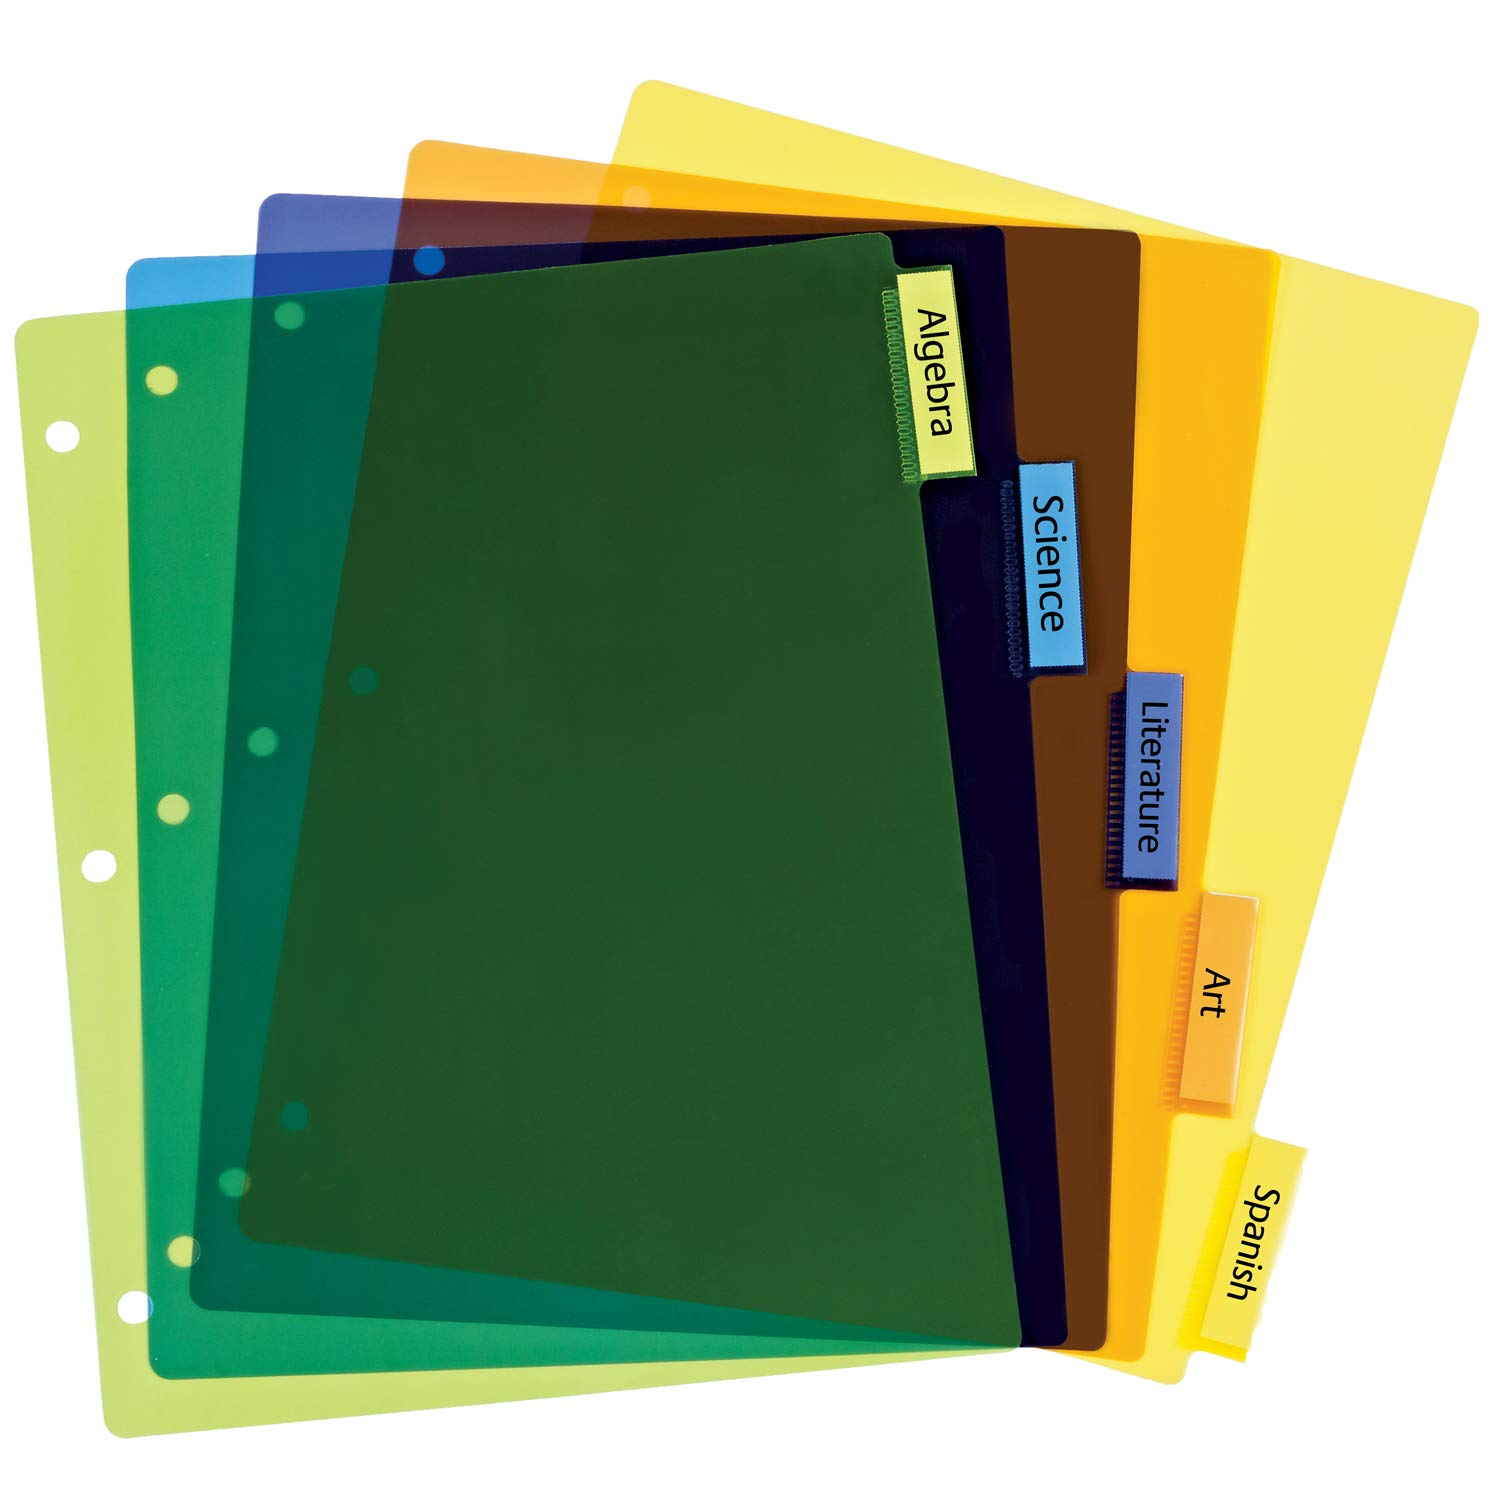 Avery 5-Tab Plastic Binder Dividers, Insertable Multicolor Big Tabs, 1 Set (11900) by Avery (Image #8)